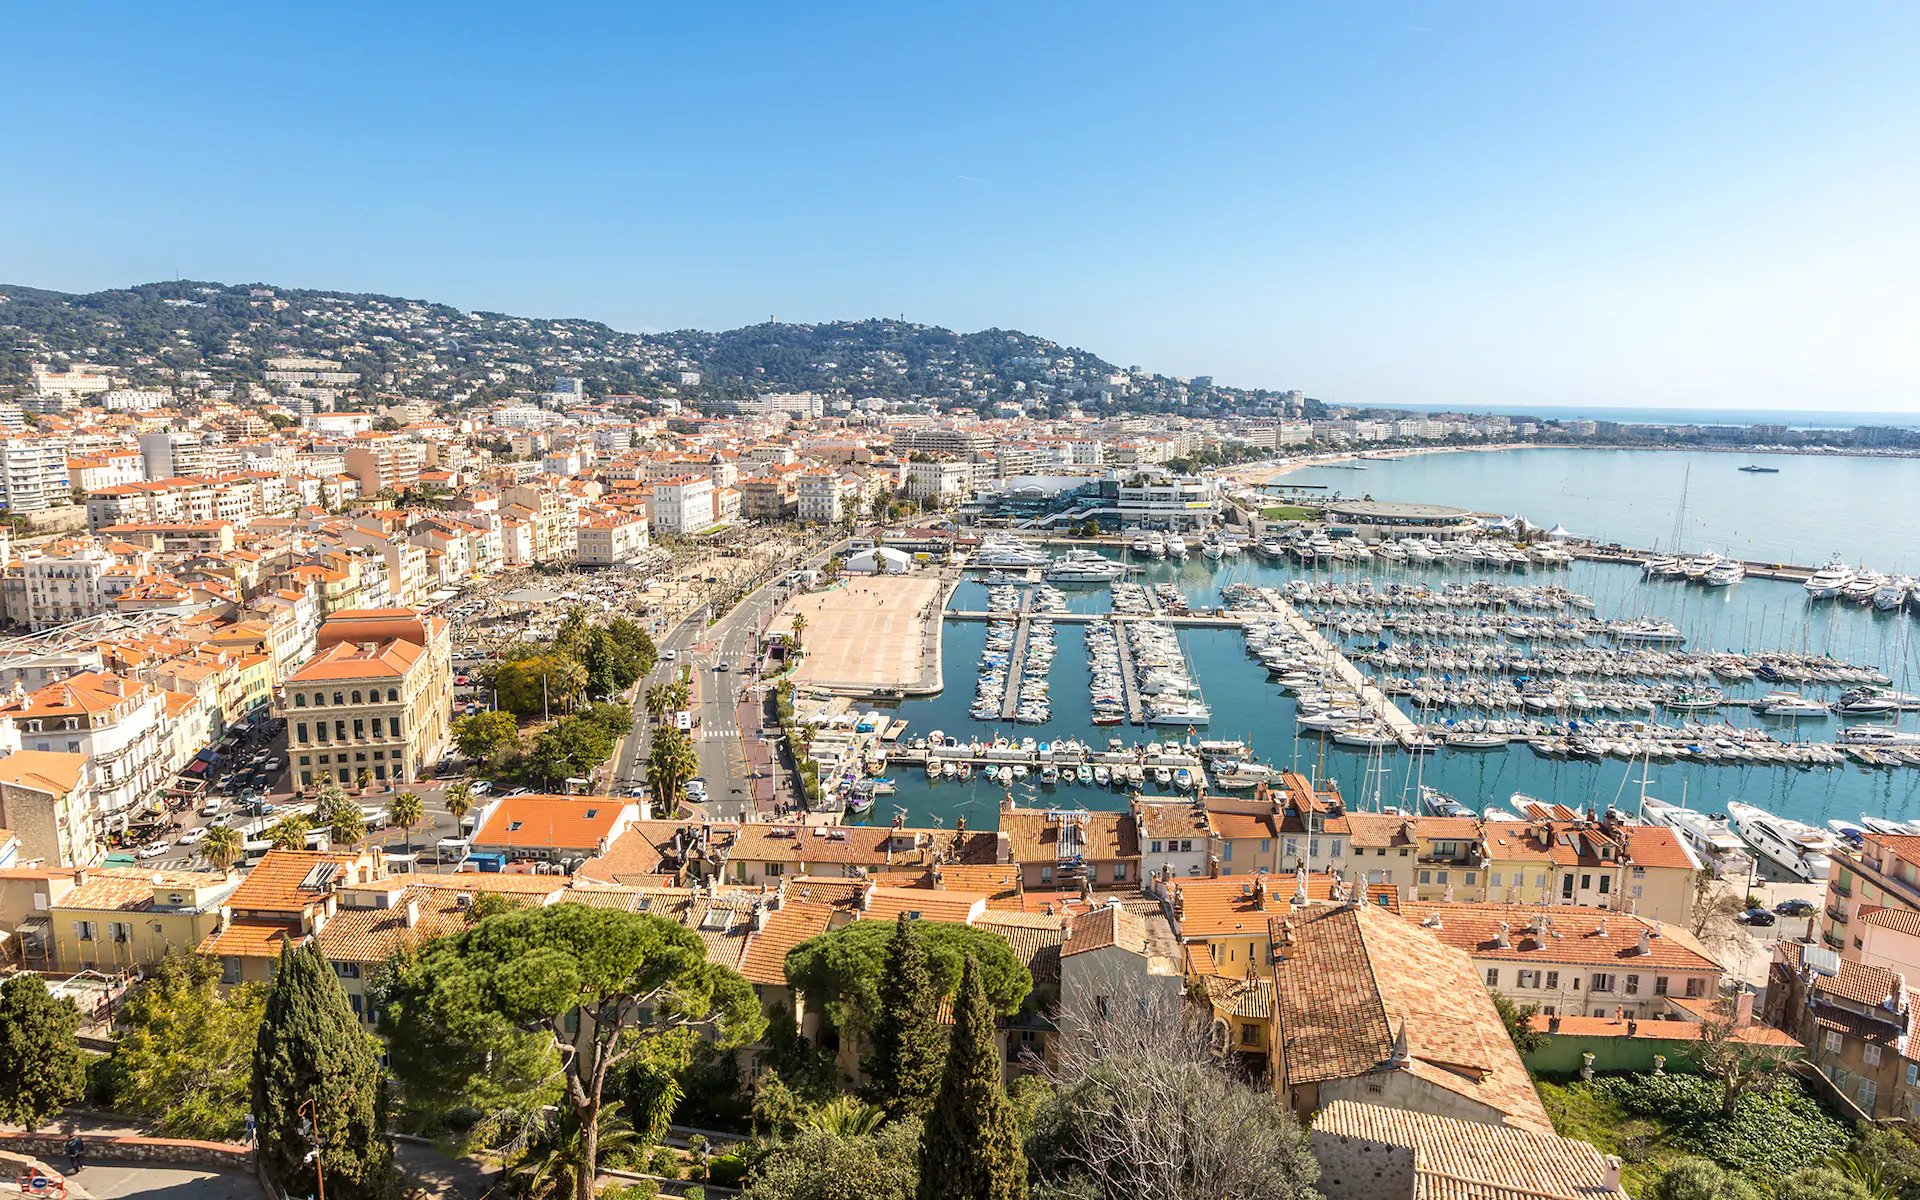 CANNES PRIVATE AIRPORT CANNES PRIVATE JET CHARTER CANNES PRIVATE JET AIRPORT CANNES EMPTY LEGS - Cannes Airport private jet charter and Cannes Airport private jet hire empty leg mlkjets